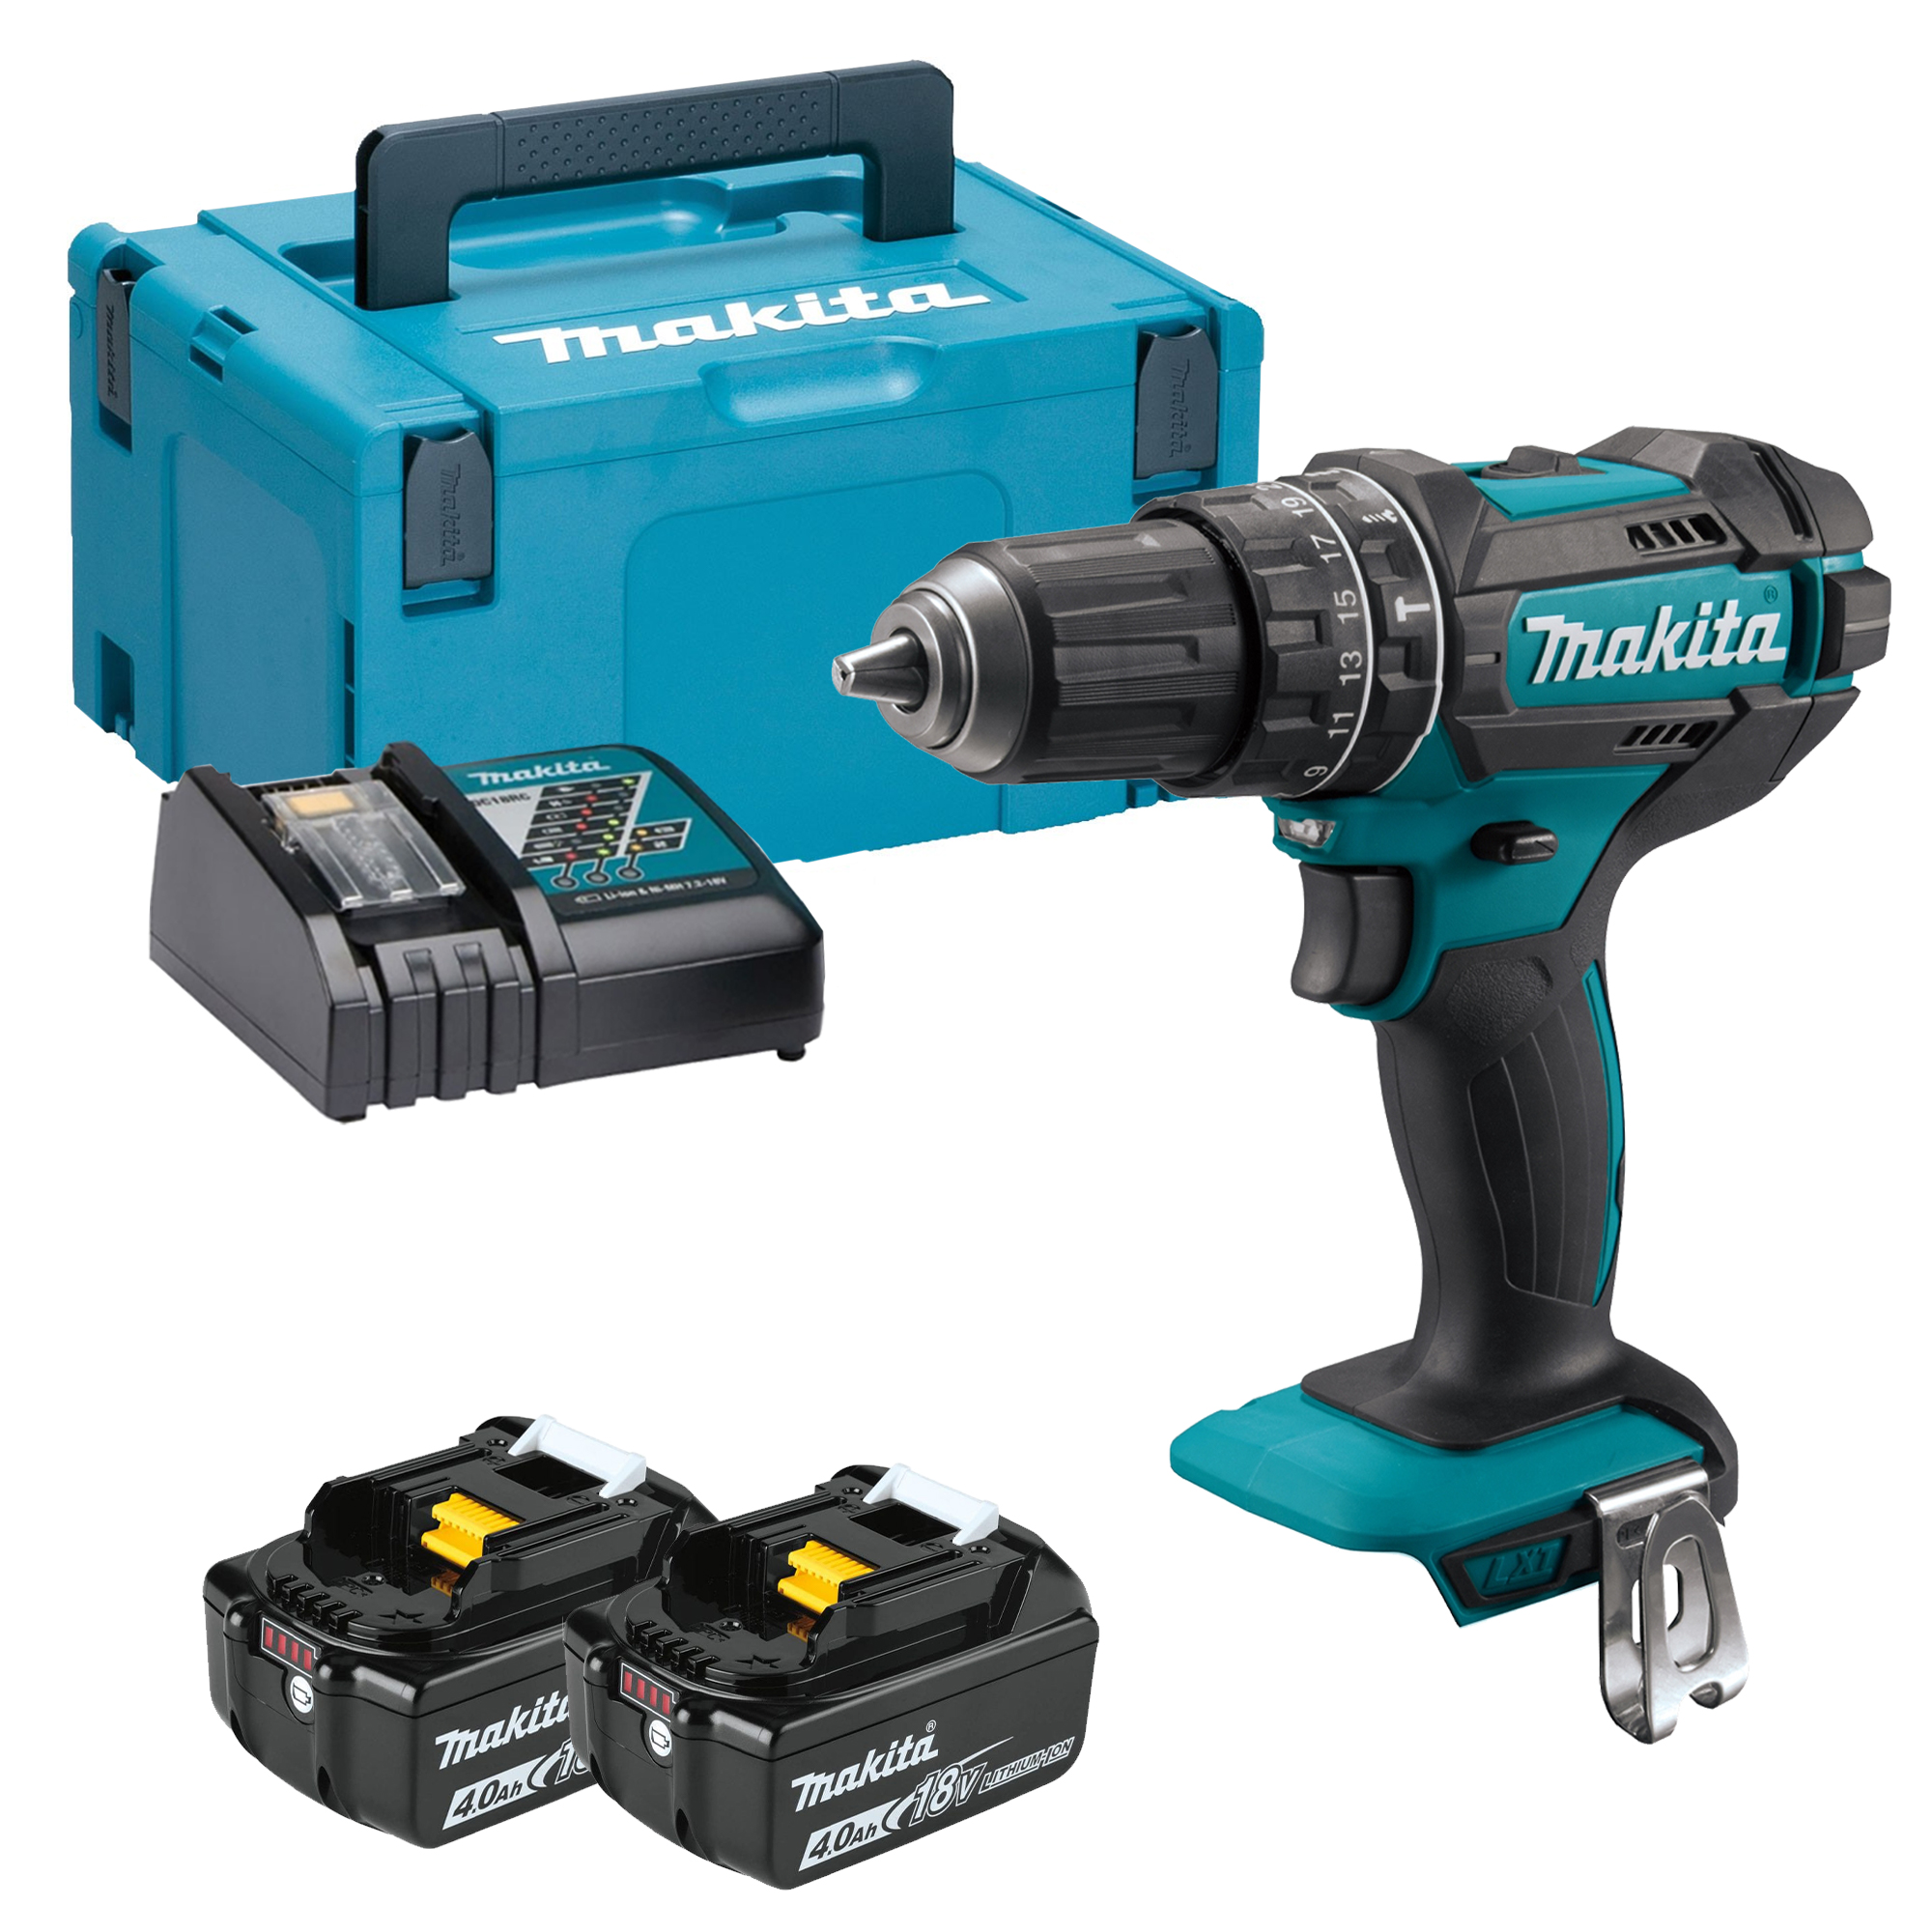 makita dhp482rmj makita 18v li ion lxt hammer drill driver. Black Bedroom Furniture Sets. Home Design Ideas